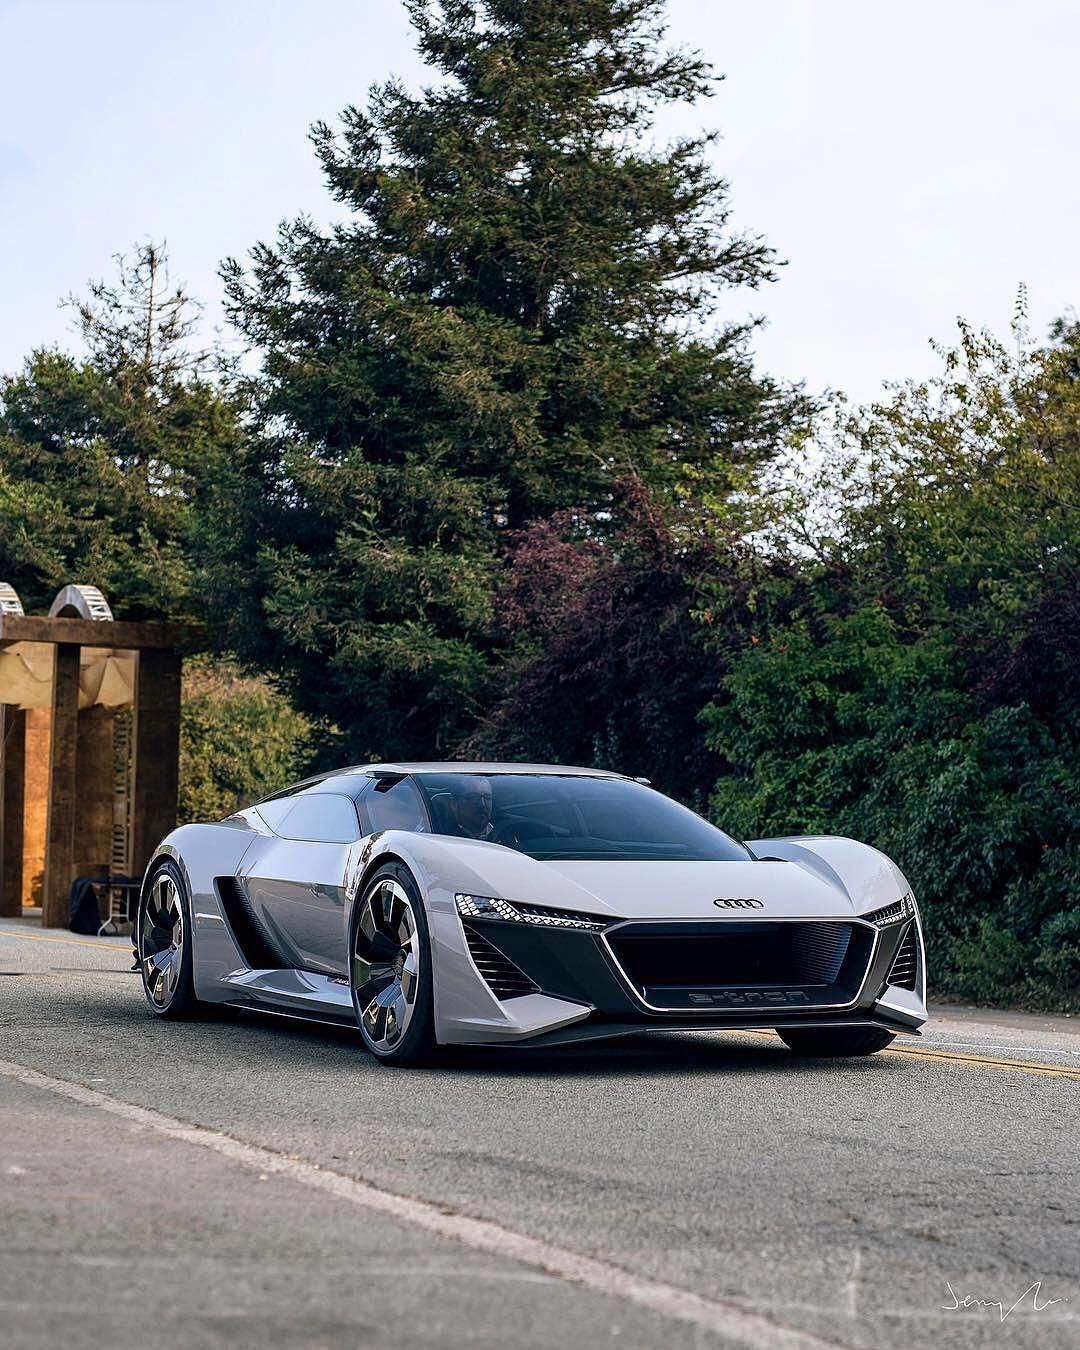 Security Check Required Audi PB18 E-Tron   Photo by @jgucars  